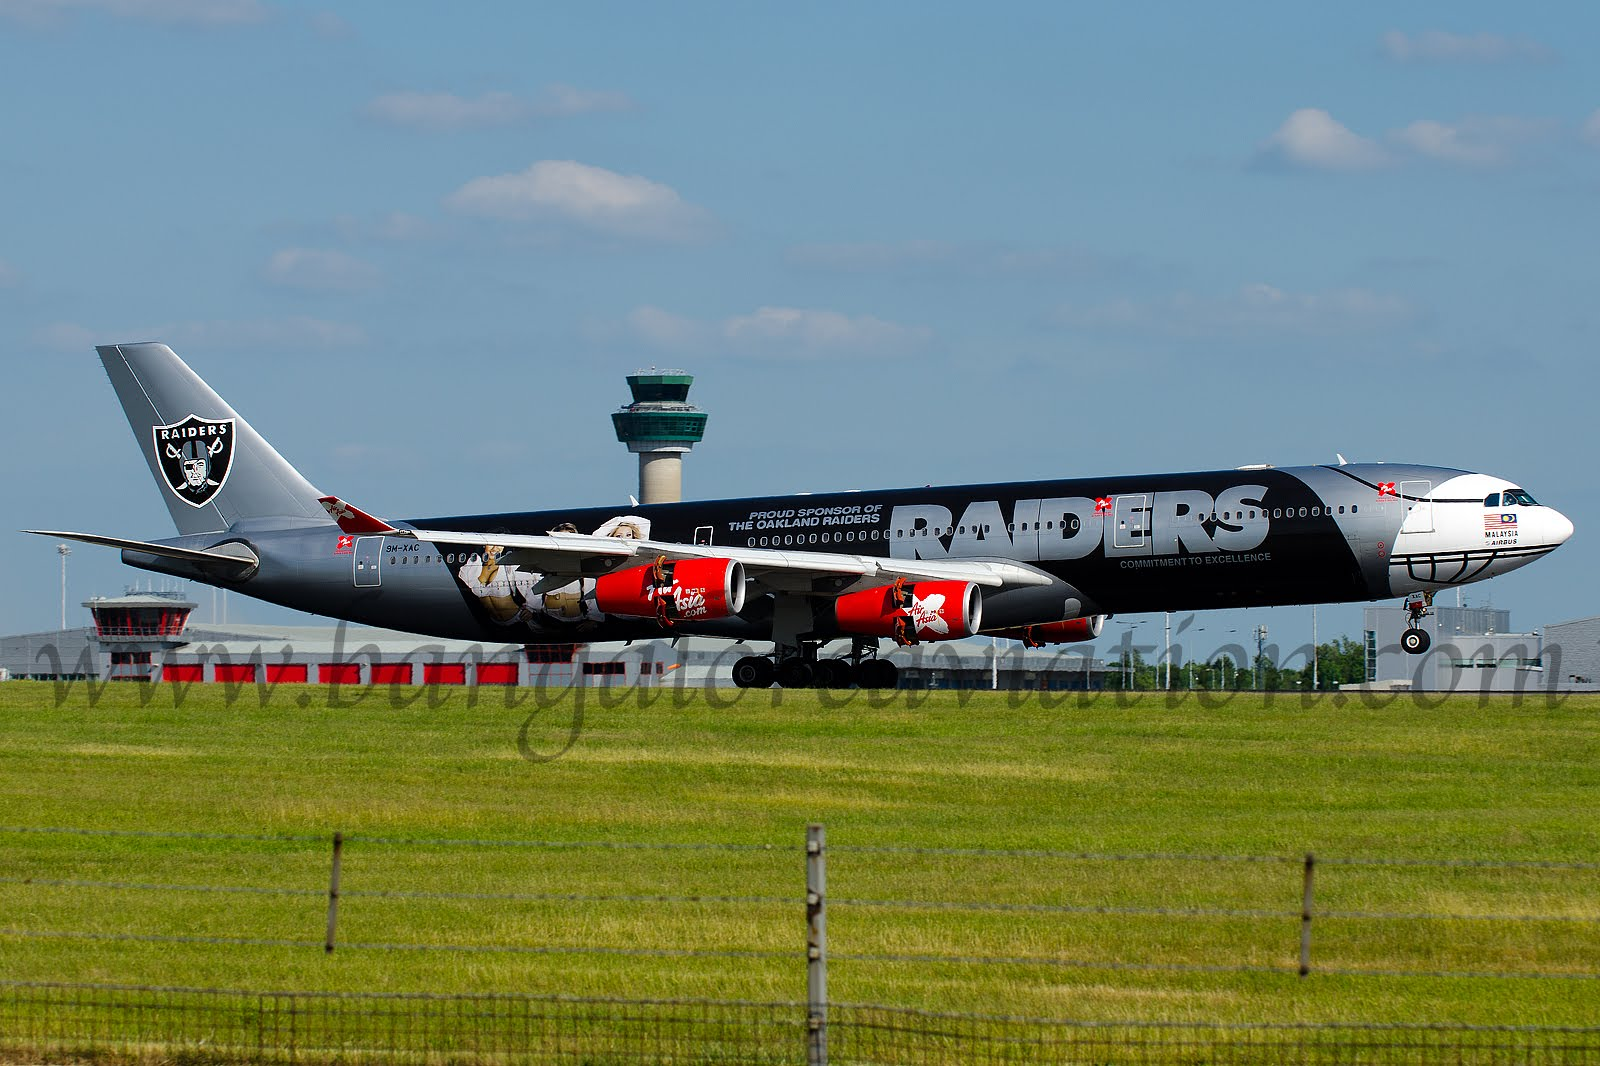 AirAsia X Airbus A340-300 in NFL Oakland Raiders football team livery at London Stansted Airport